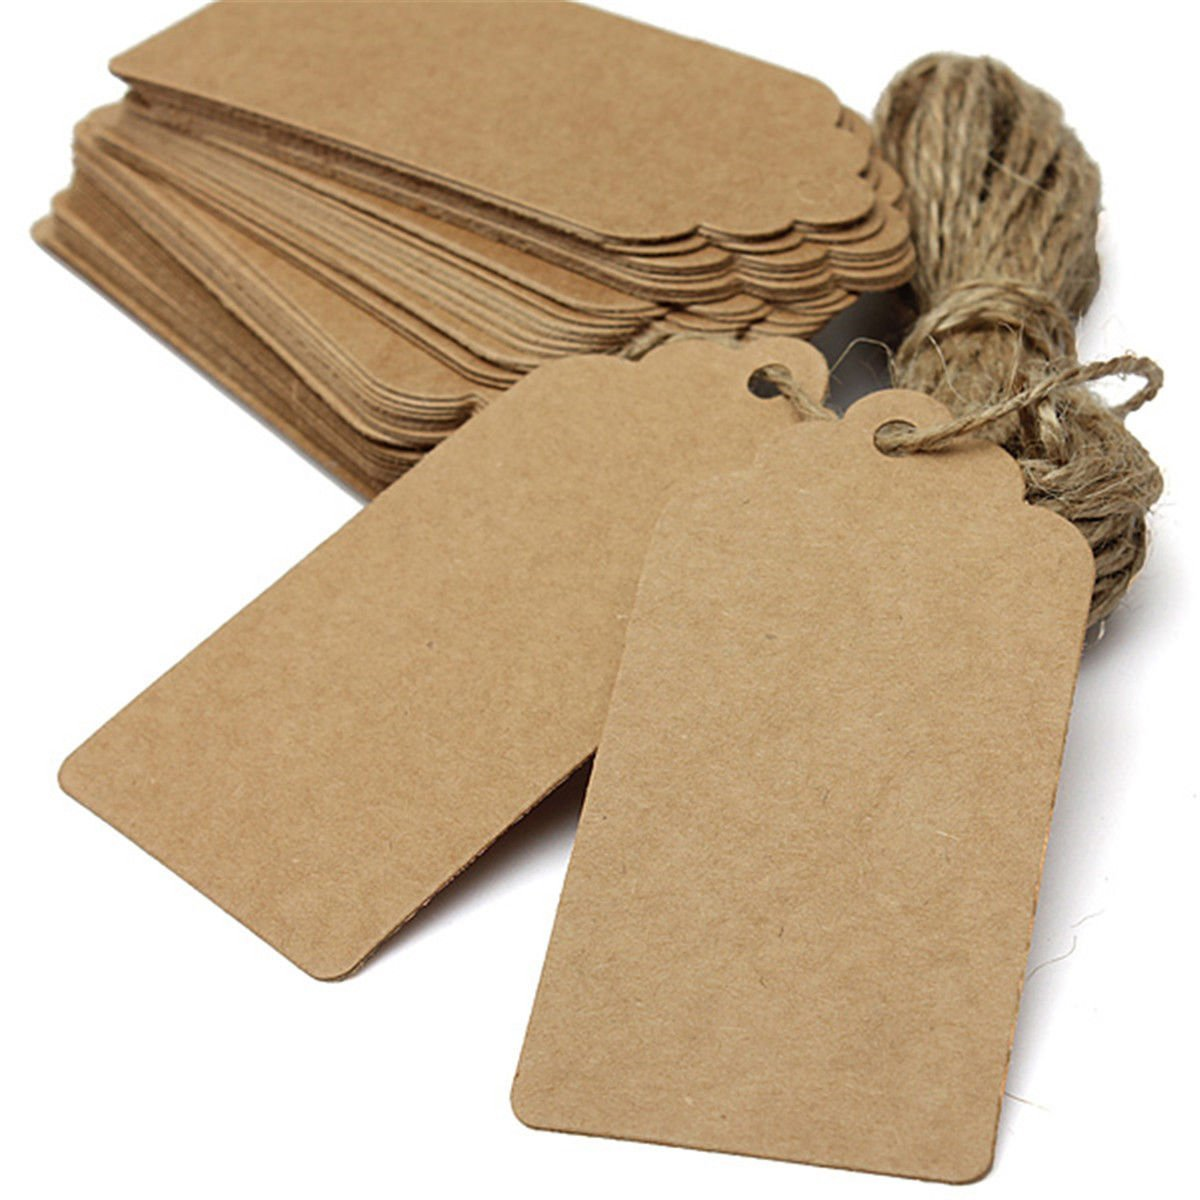 100 brown kraft paper gift tags wedding scallop label blank 100 brown kraft paper gift tags wedding scallop label blank luggage tagssize 4595cm 350gsm kraft paperstrings amazon office products jeuxipadfo Choice Image